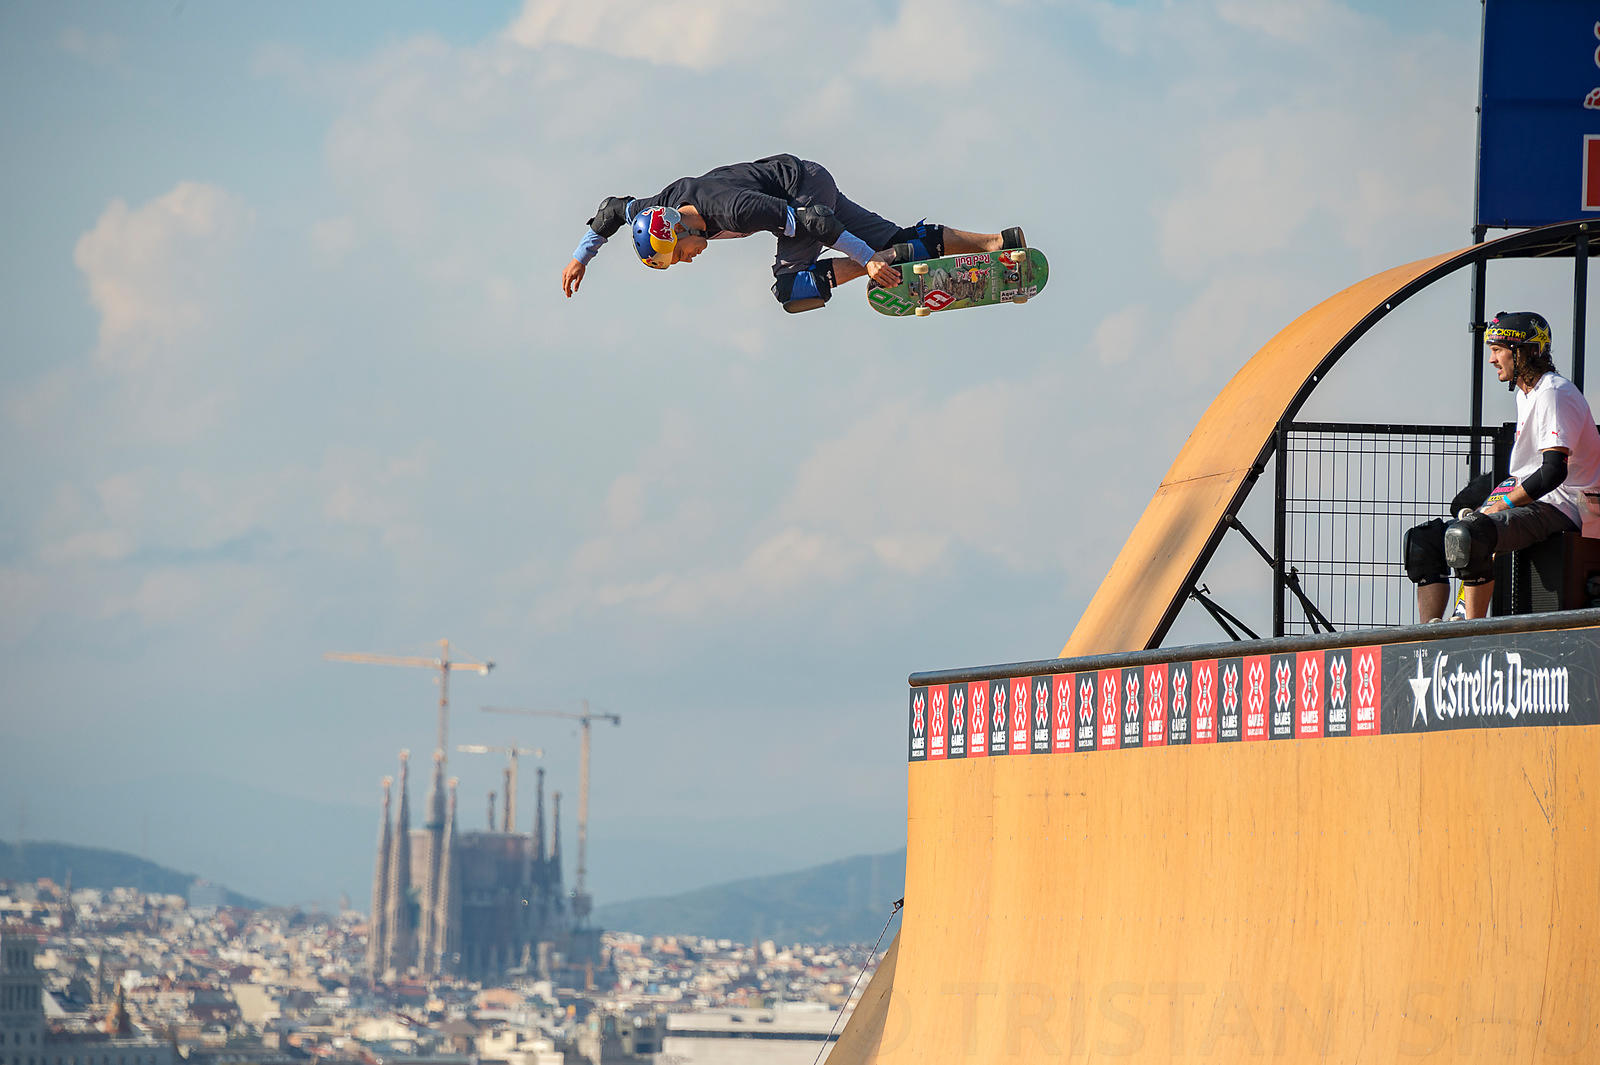 X Games Barcelona 2013 - May 16, 2013